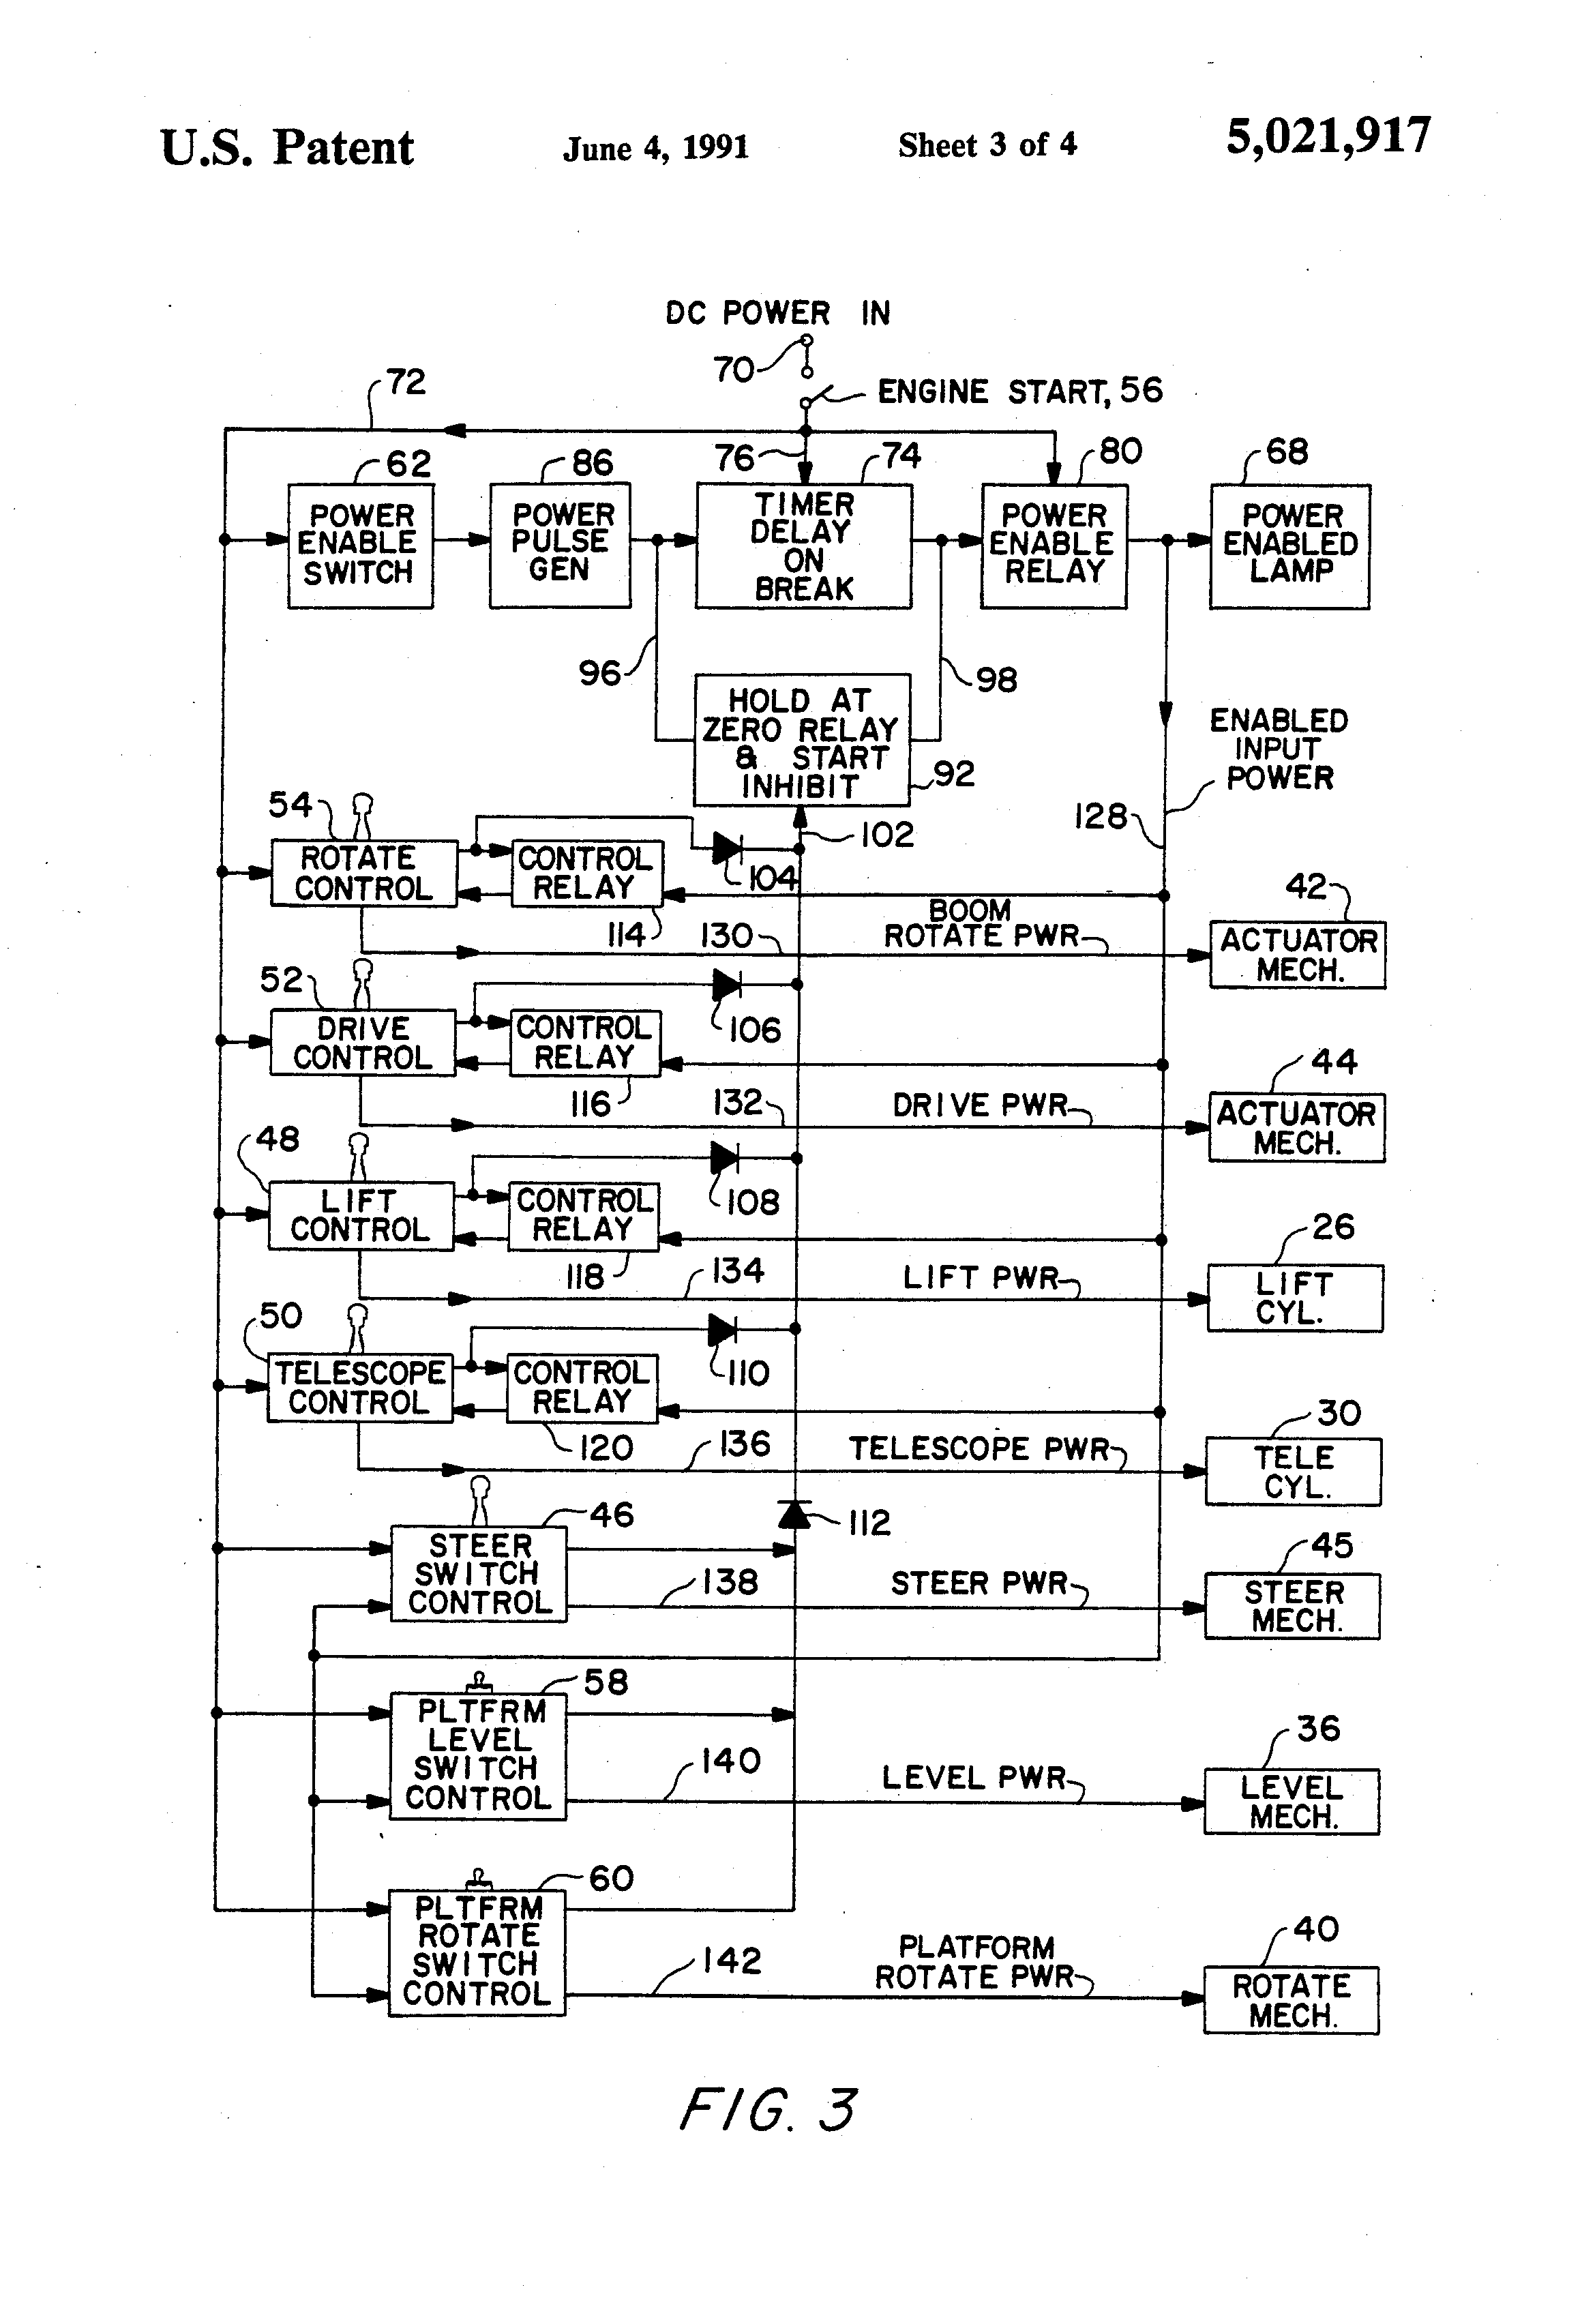 patent us control panel power enabling and disabling patent drawing